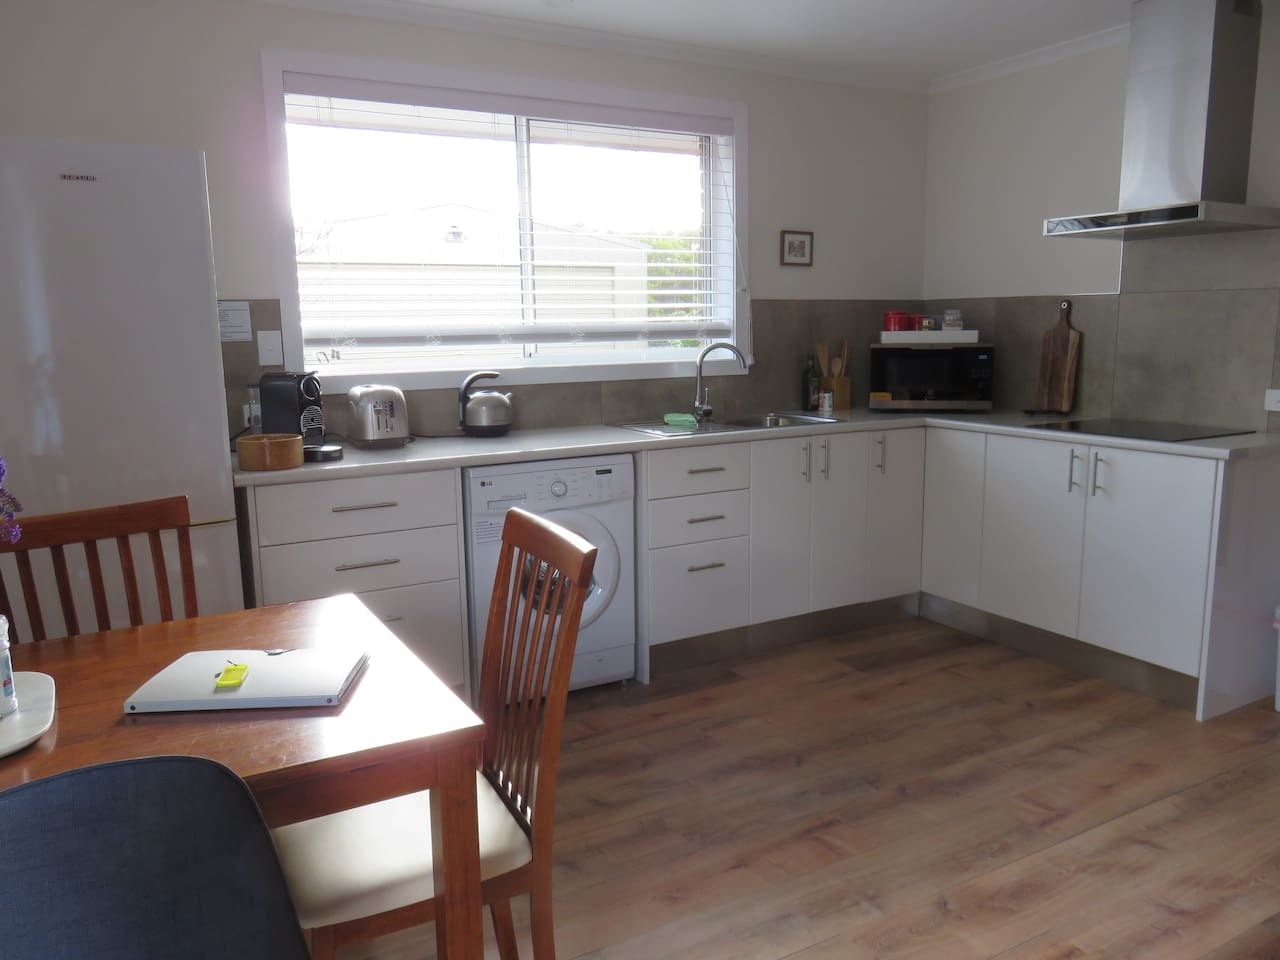 Fully equipped kitchen with full size fridge/freezer and electric cook top. Coffee machine with milk frother, and a range of breakfast options.